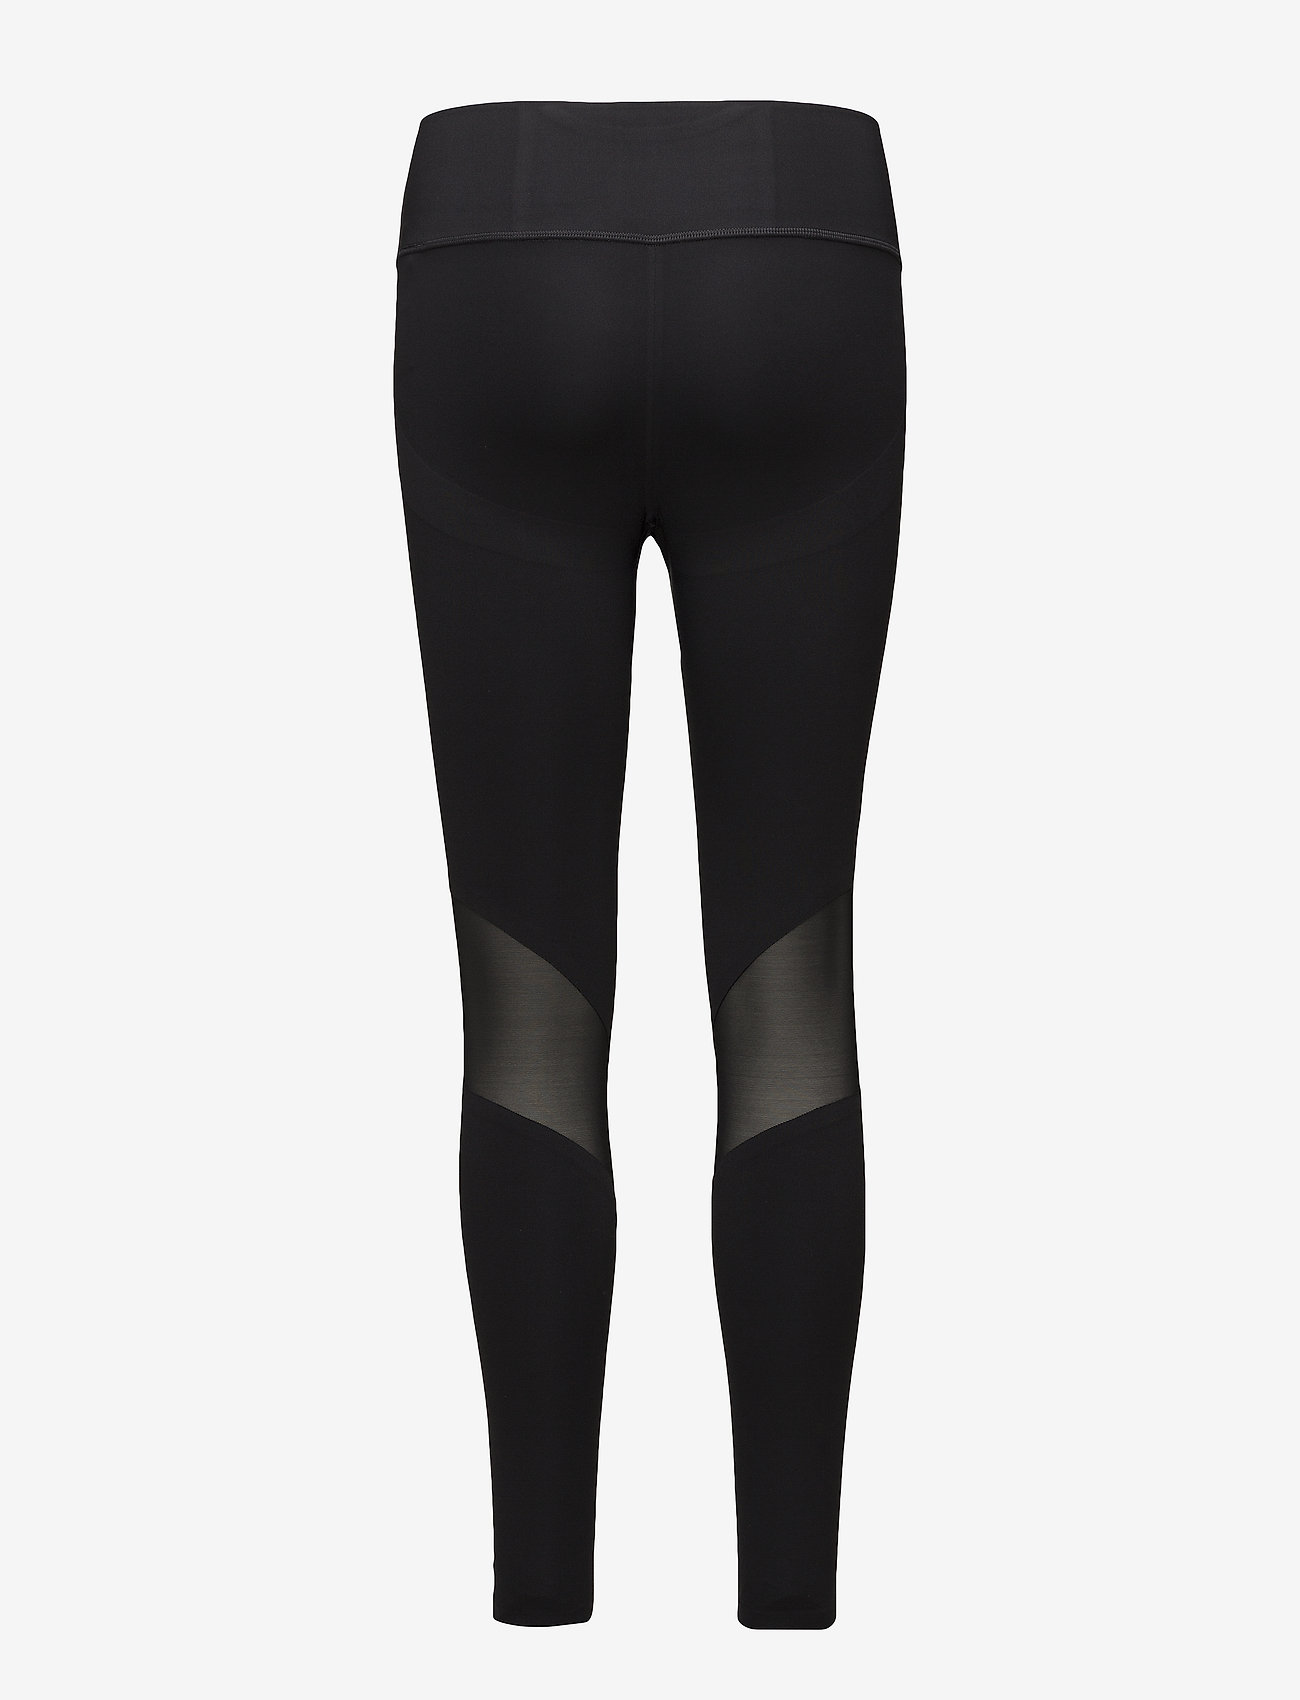 Calvin Klein Performance - FULL LENGTH BUTT LIF - running & training tights - ck black - 1